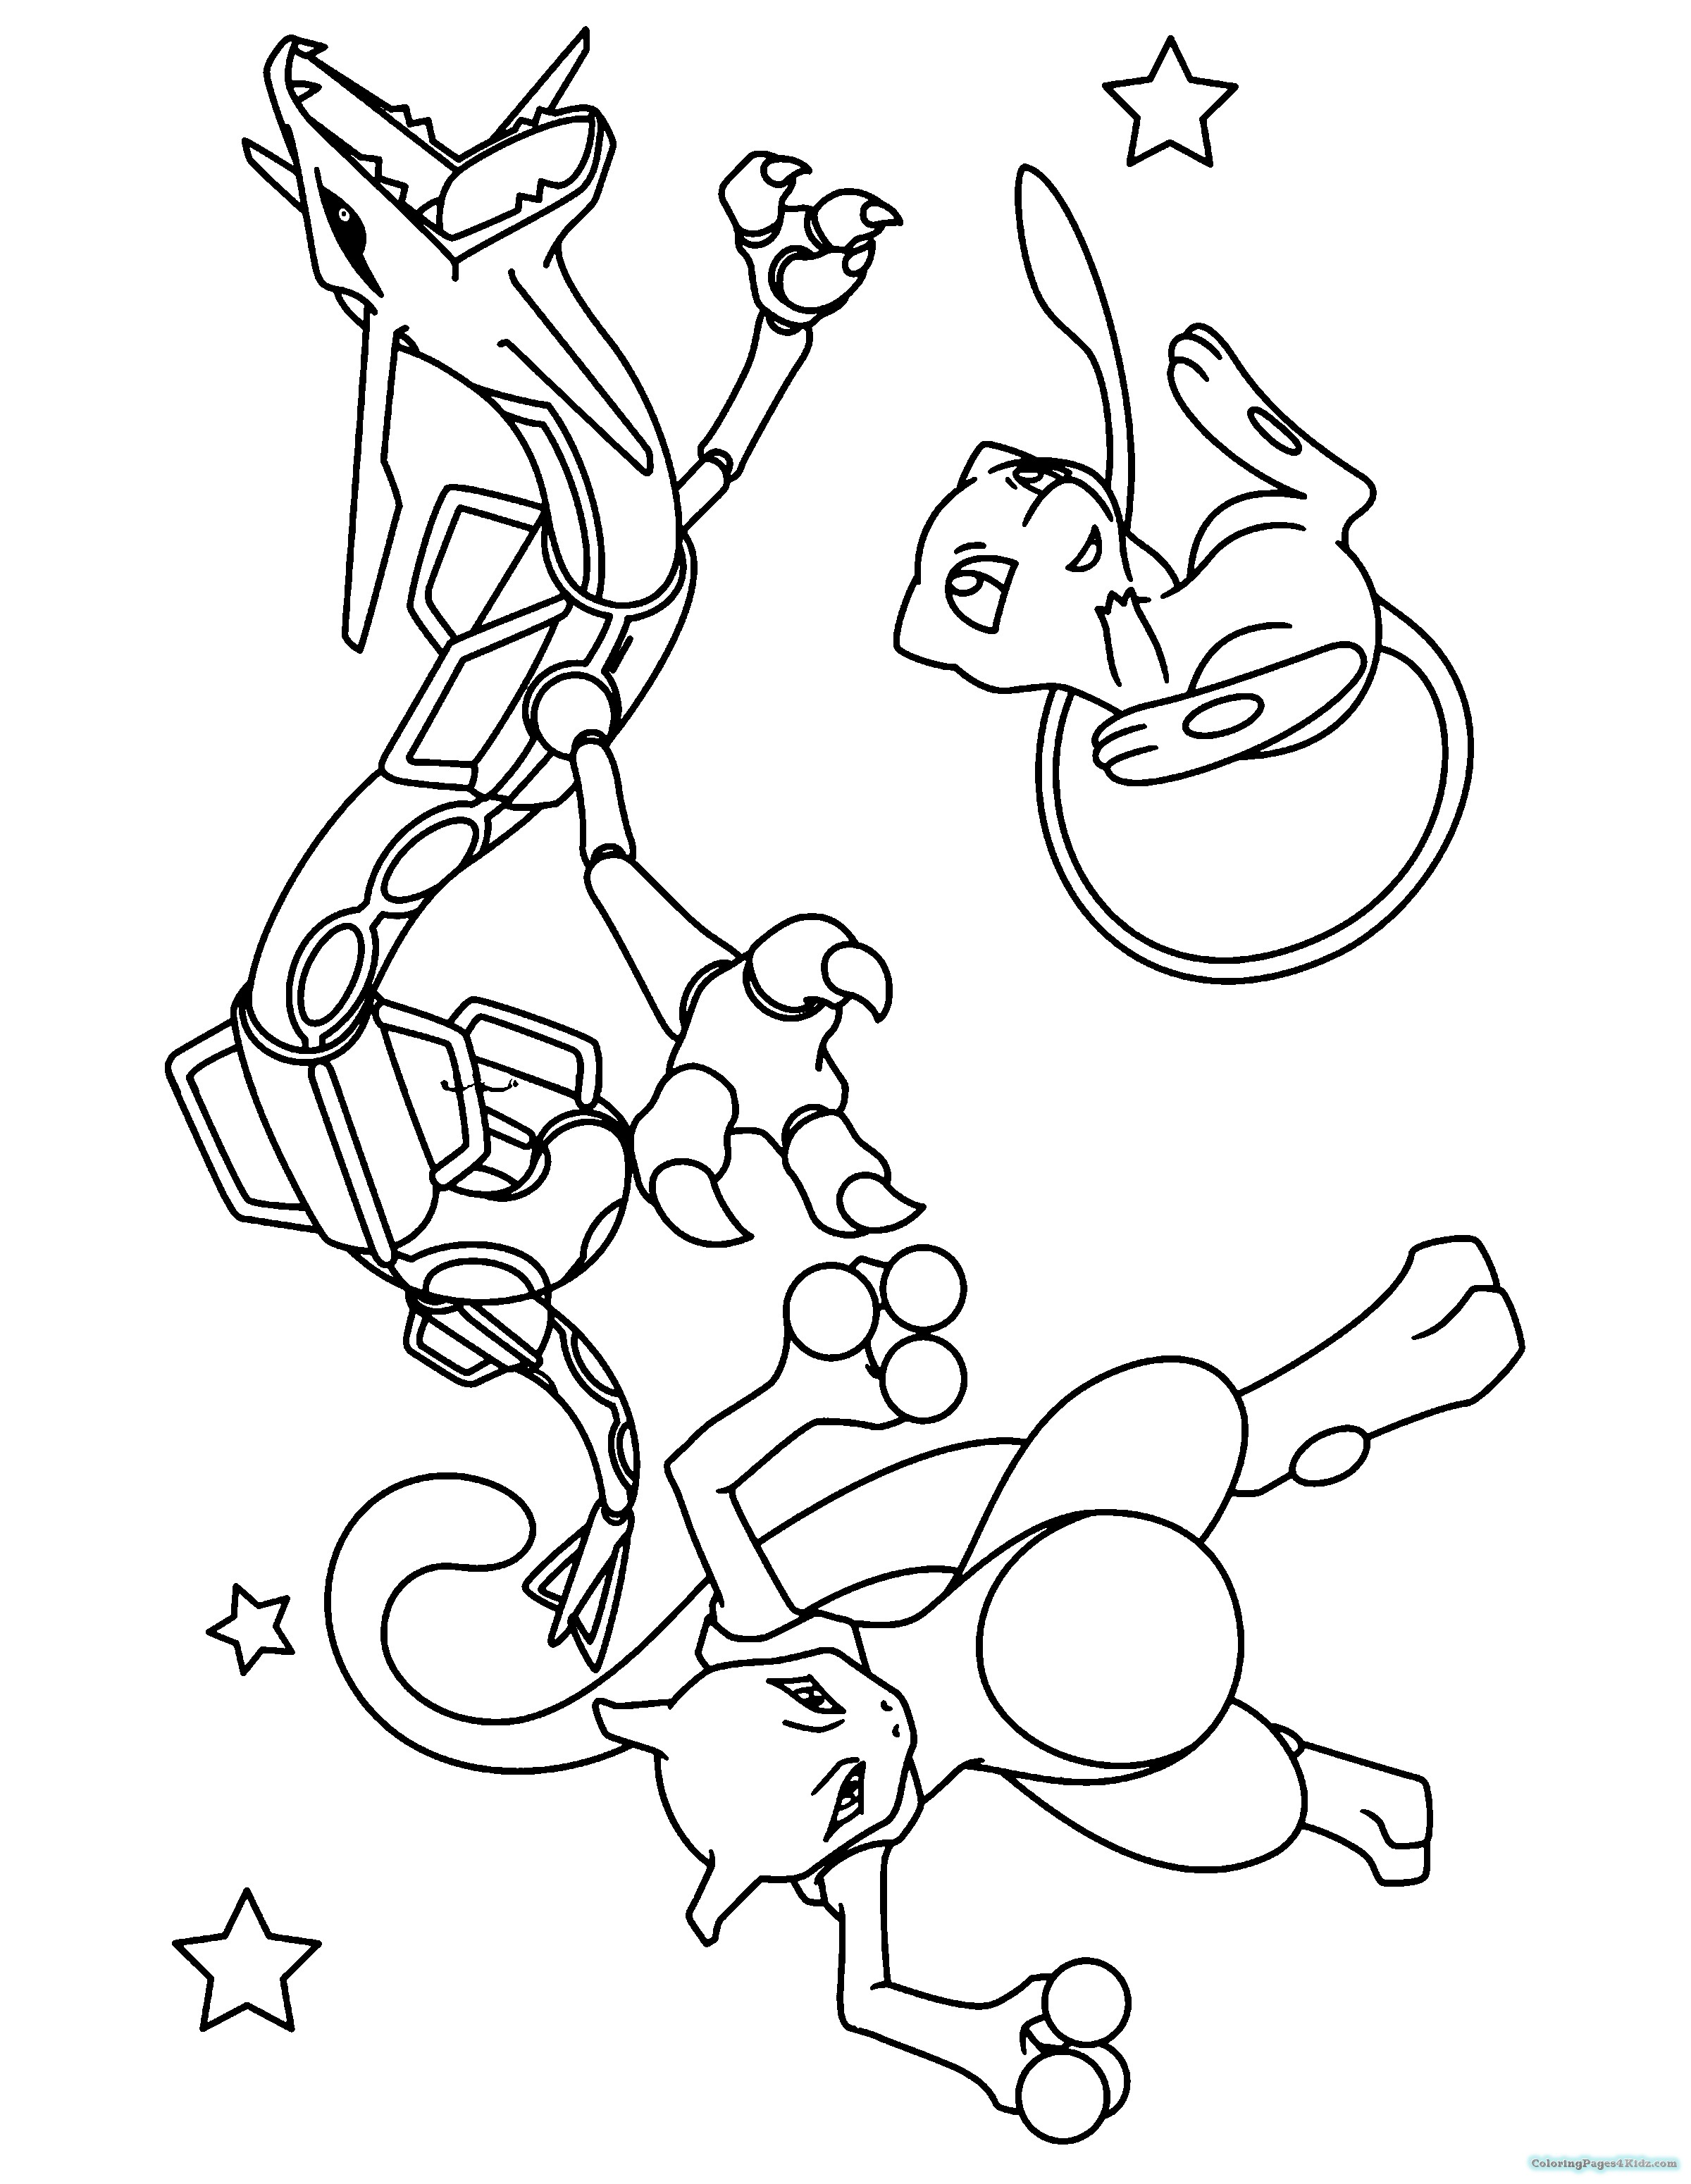 coloring pages pokemon legendary pokemon necrozma coloring pages hd football pages legendary pokemon coloring